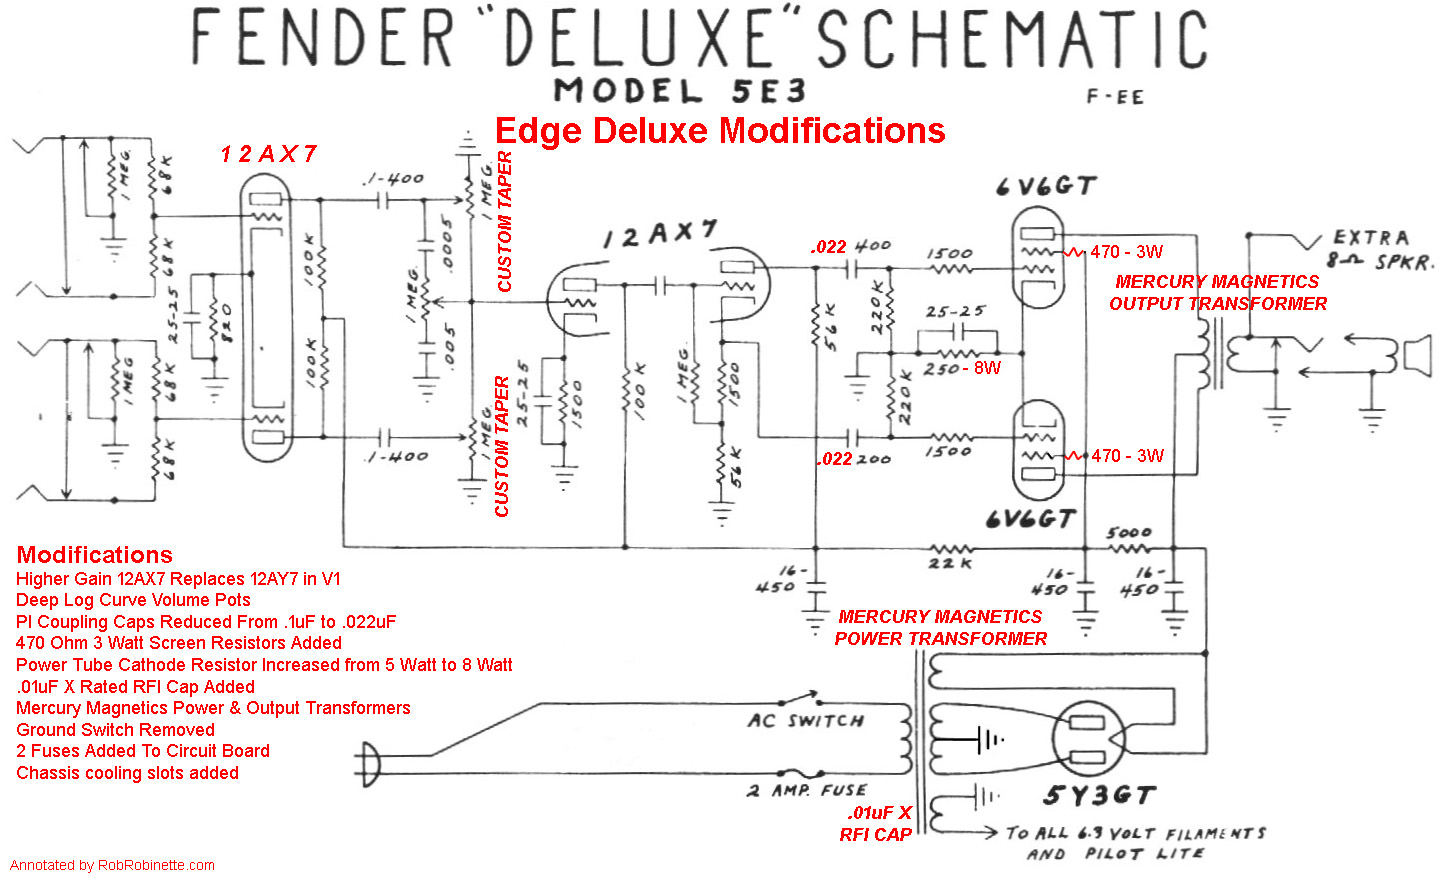 Edge_Deluxe_Schematic 5e3 mods mercury magnetics wiring diagram at readyjetset.co